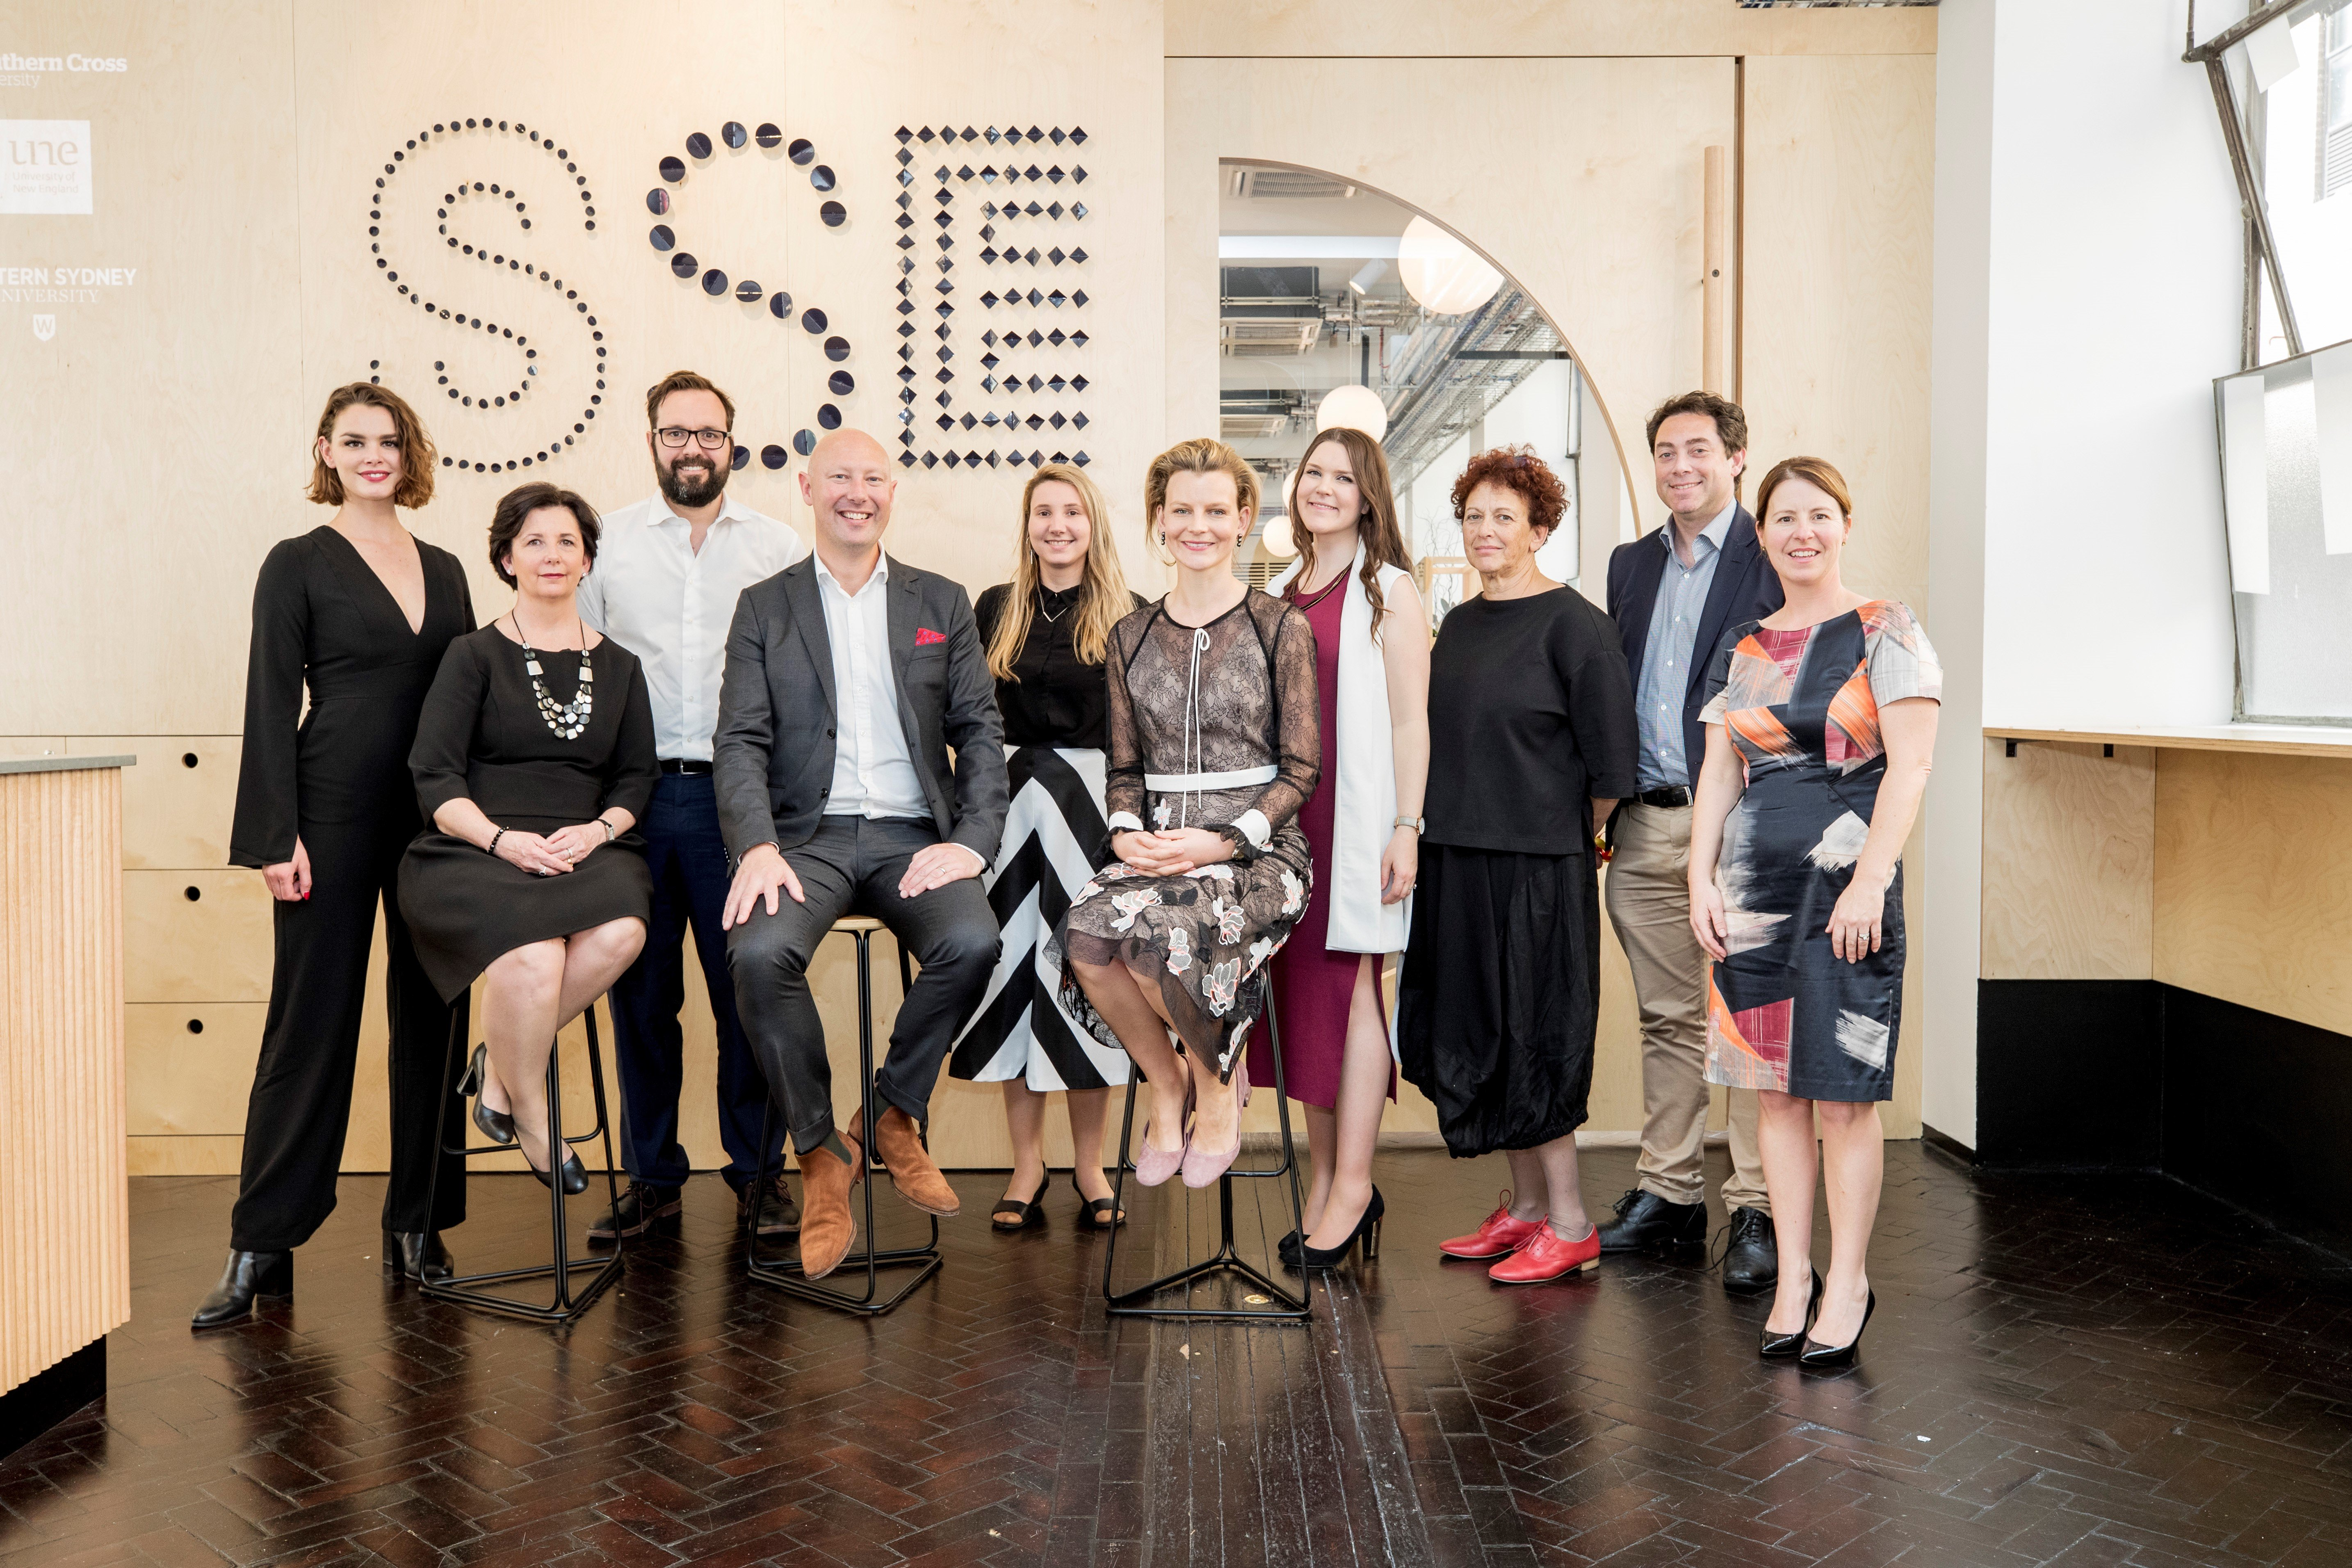 Sydney school of entrepreneurship opens its doors